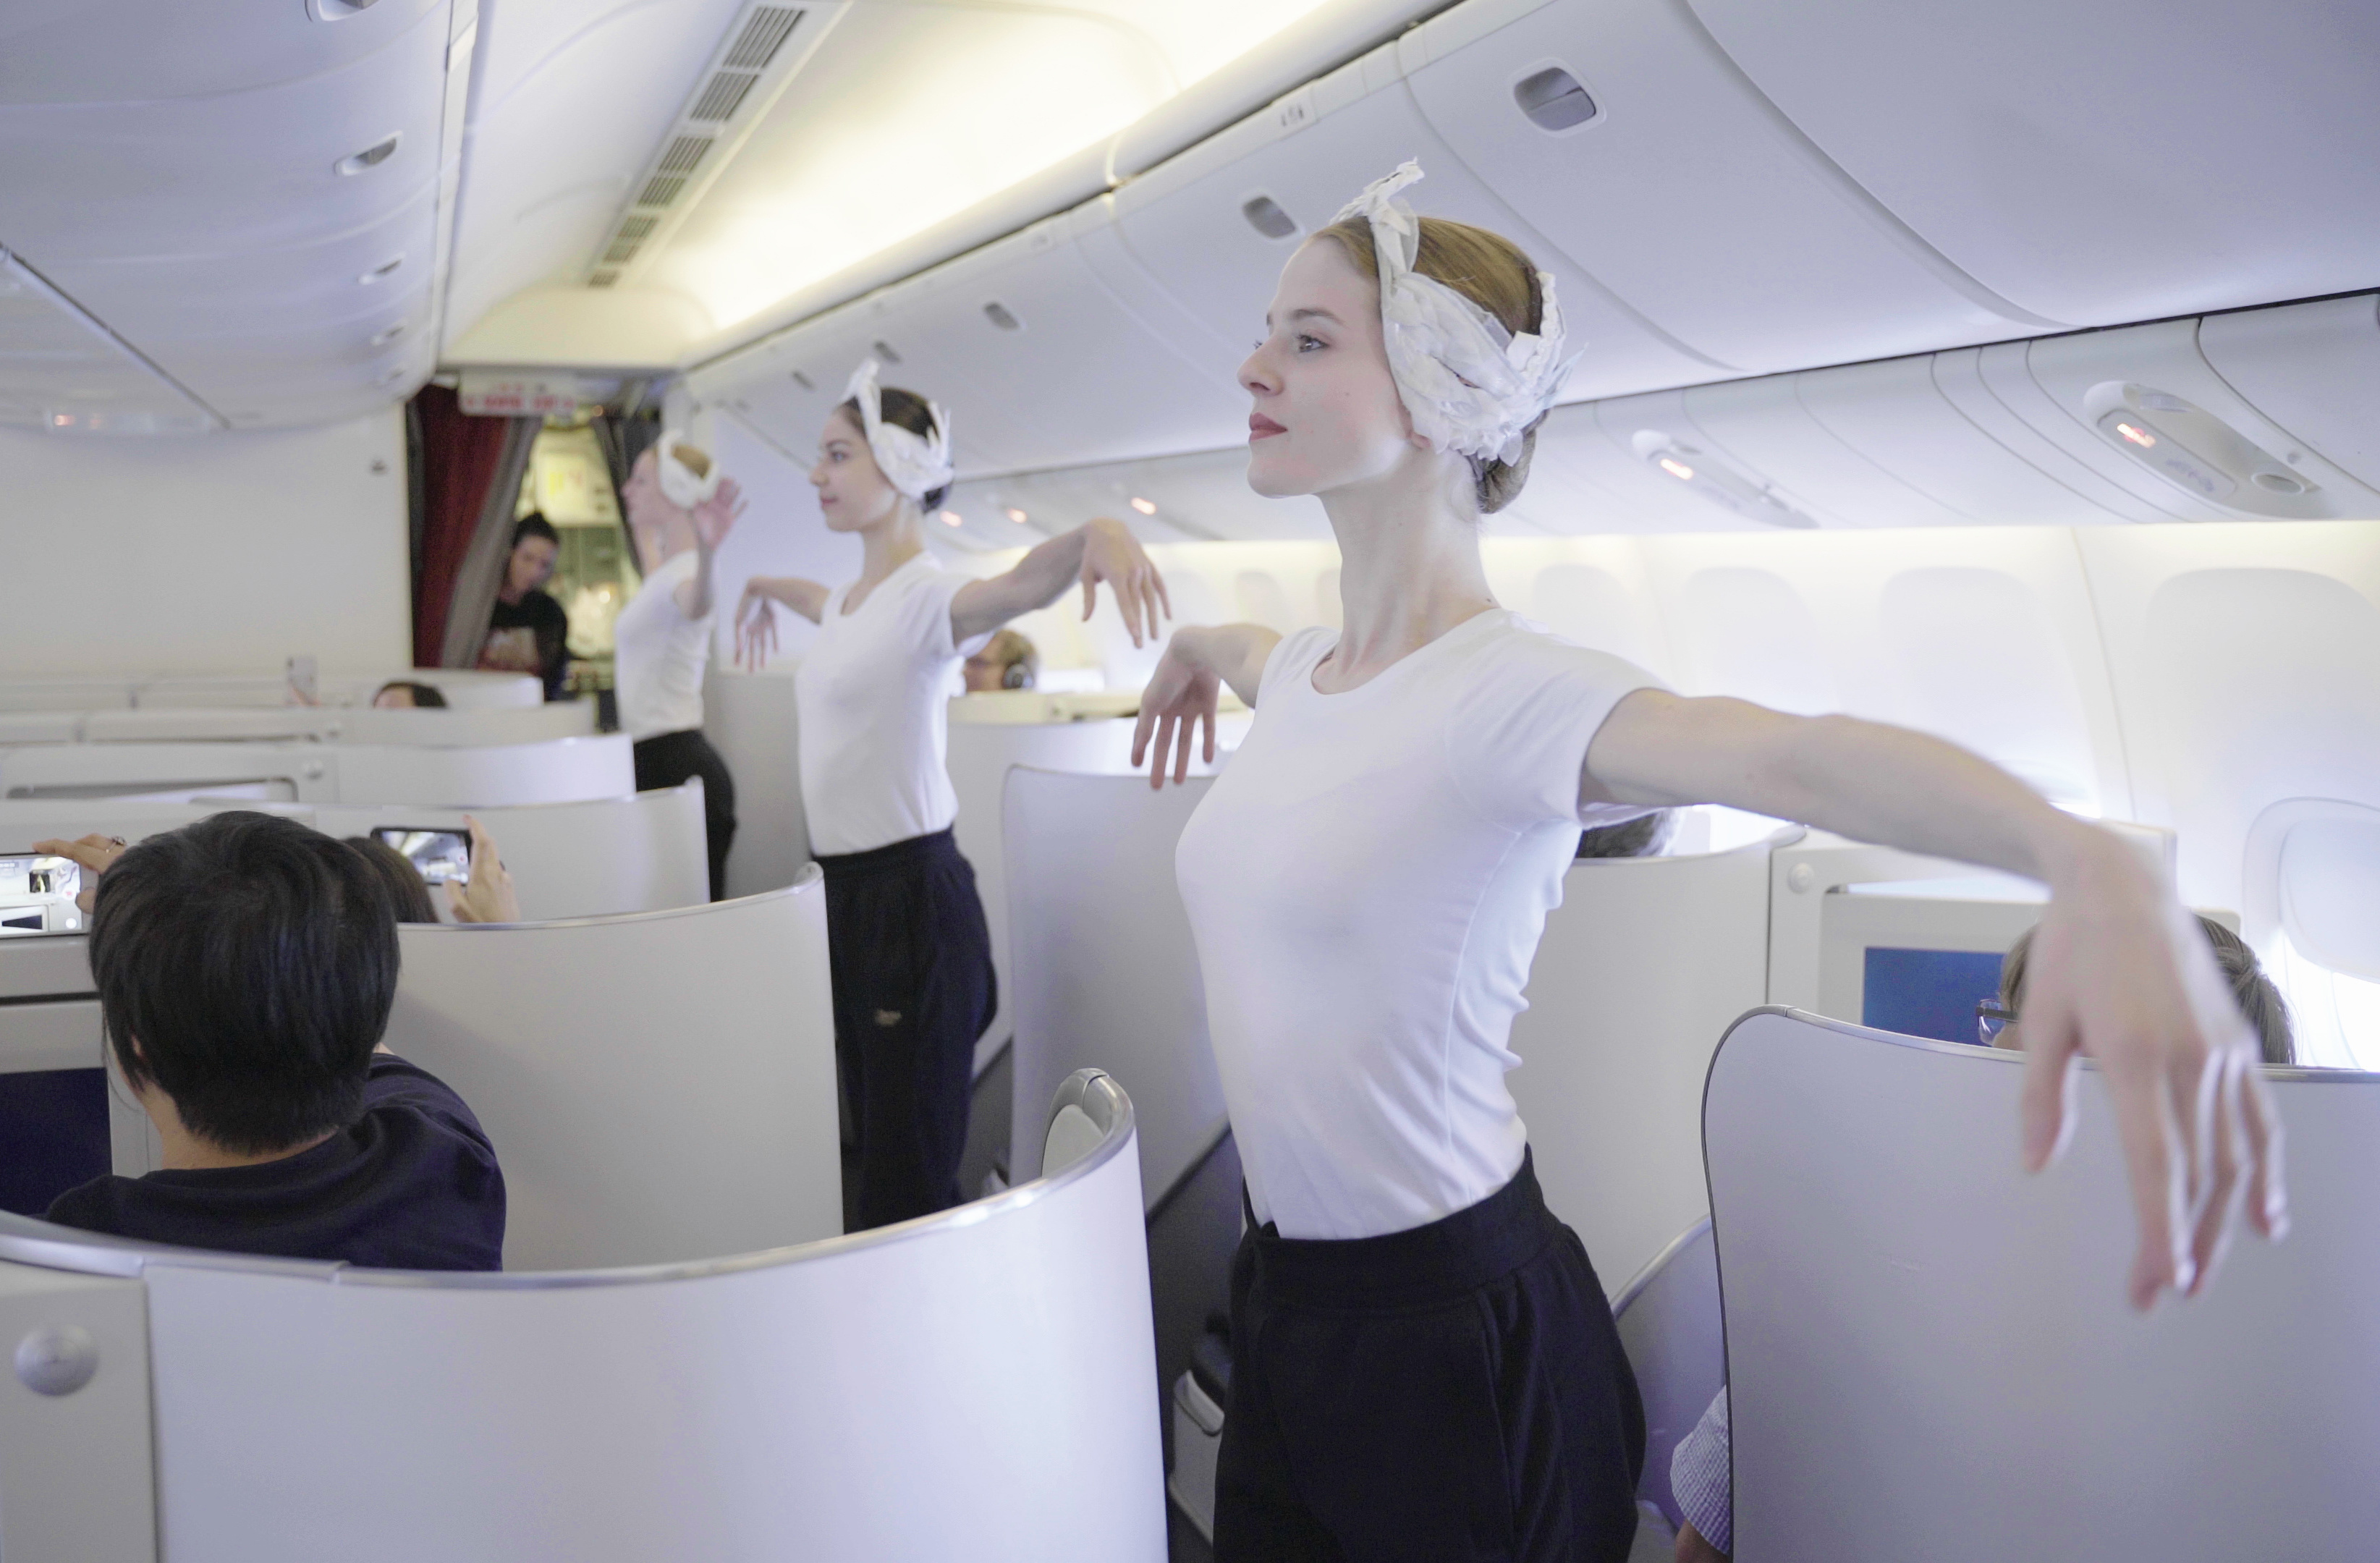 Watch These Paris Opéra Ballet Dancers Give a Surprise In-Flight Performance